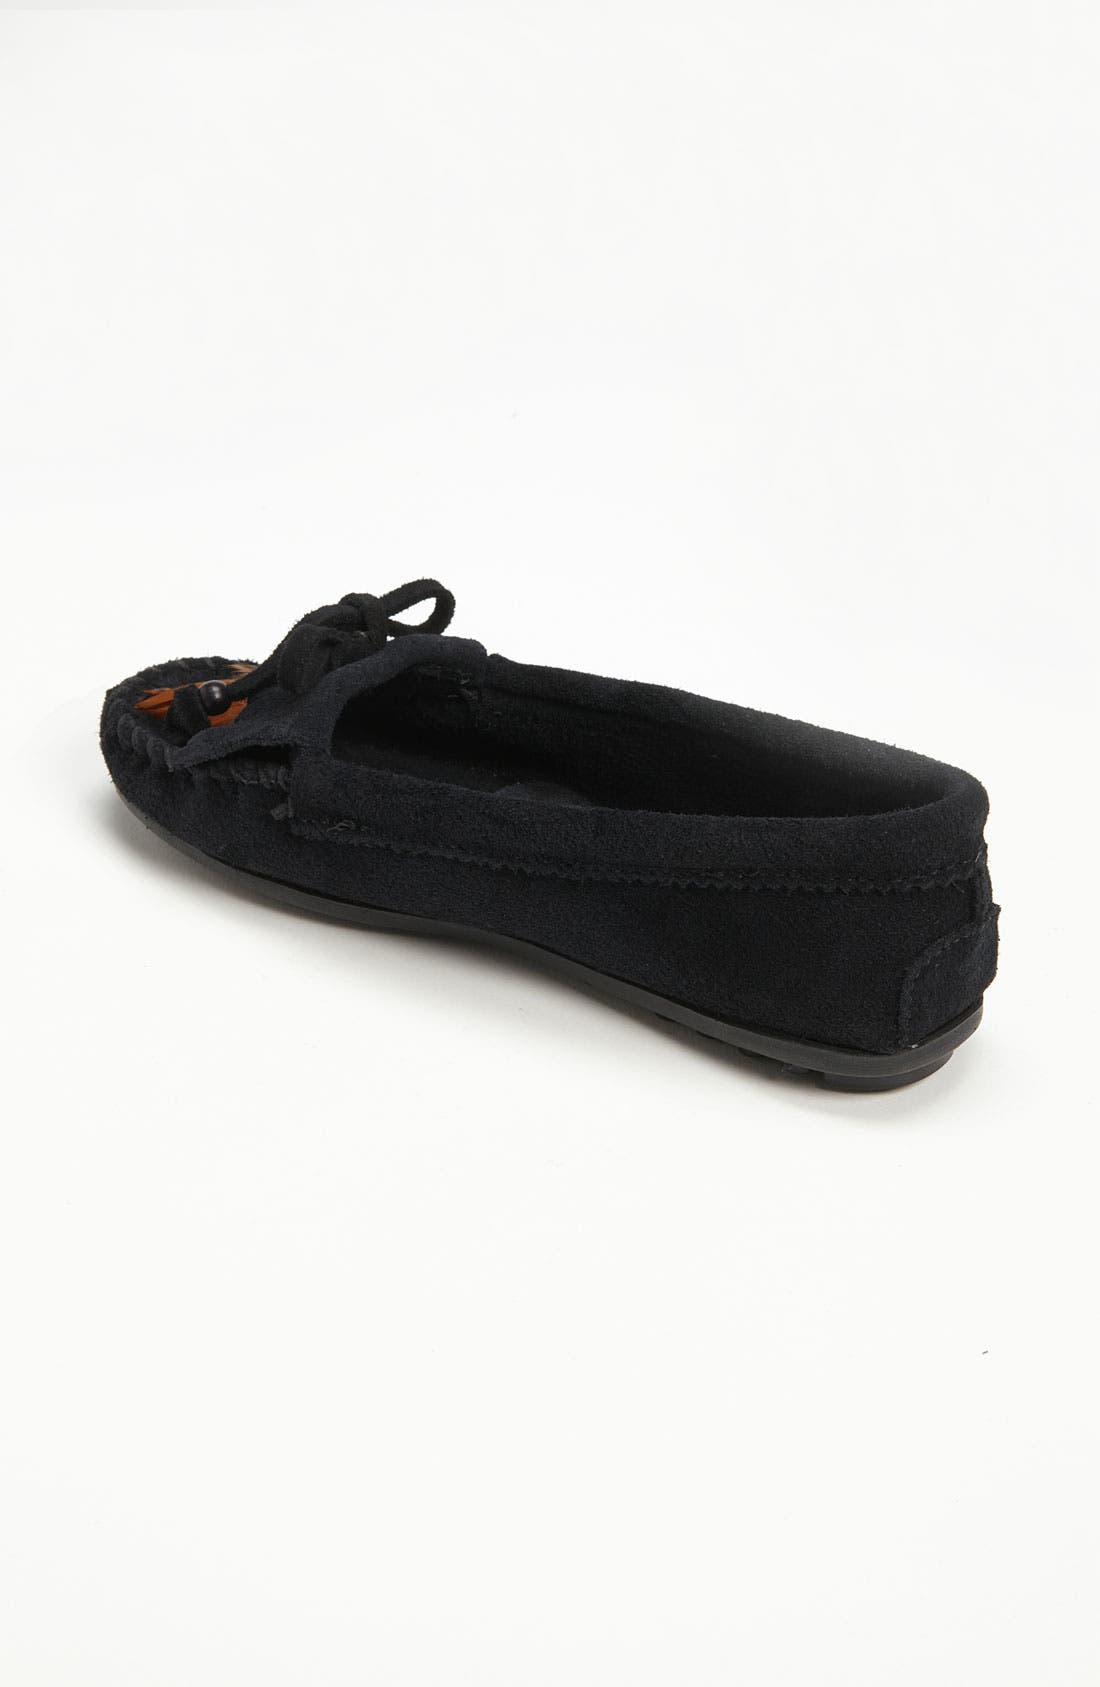 Alternate Image 2  - Minnetonka 'Feather' Moccasin (Regular Retail Price: $48.95)